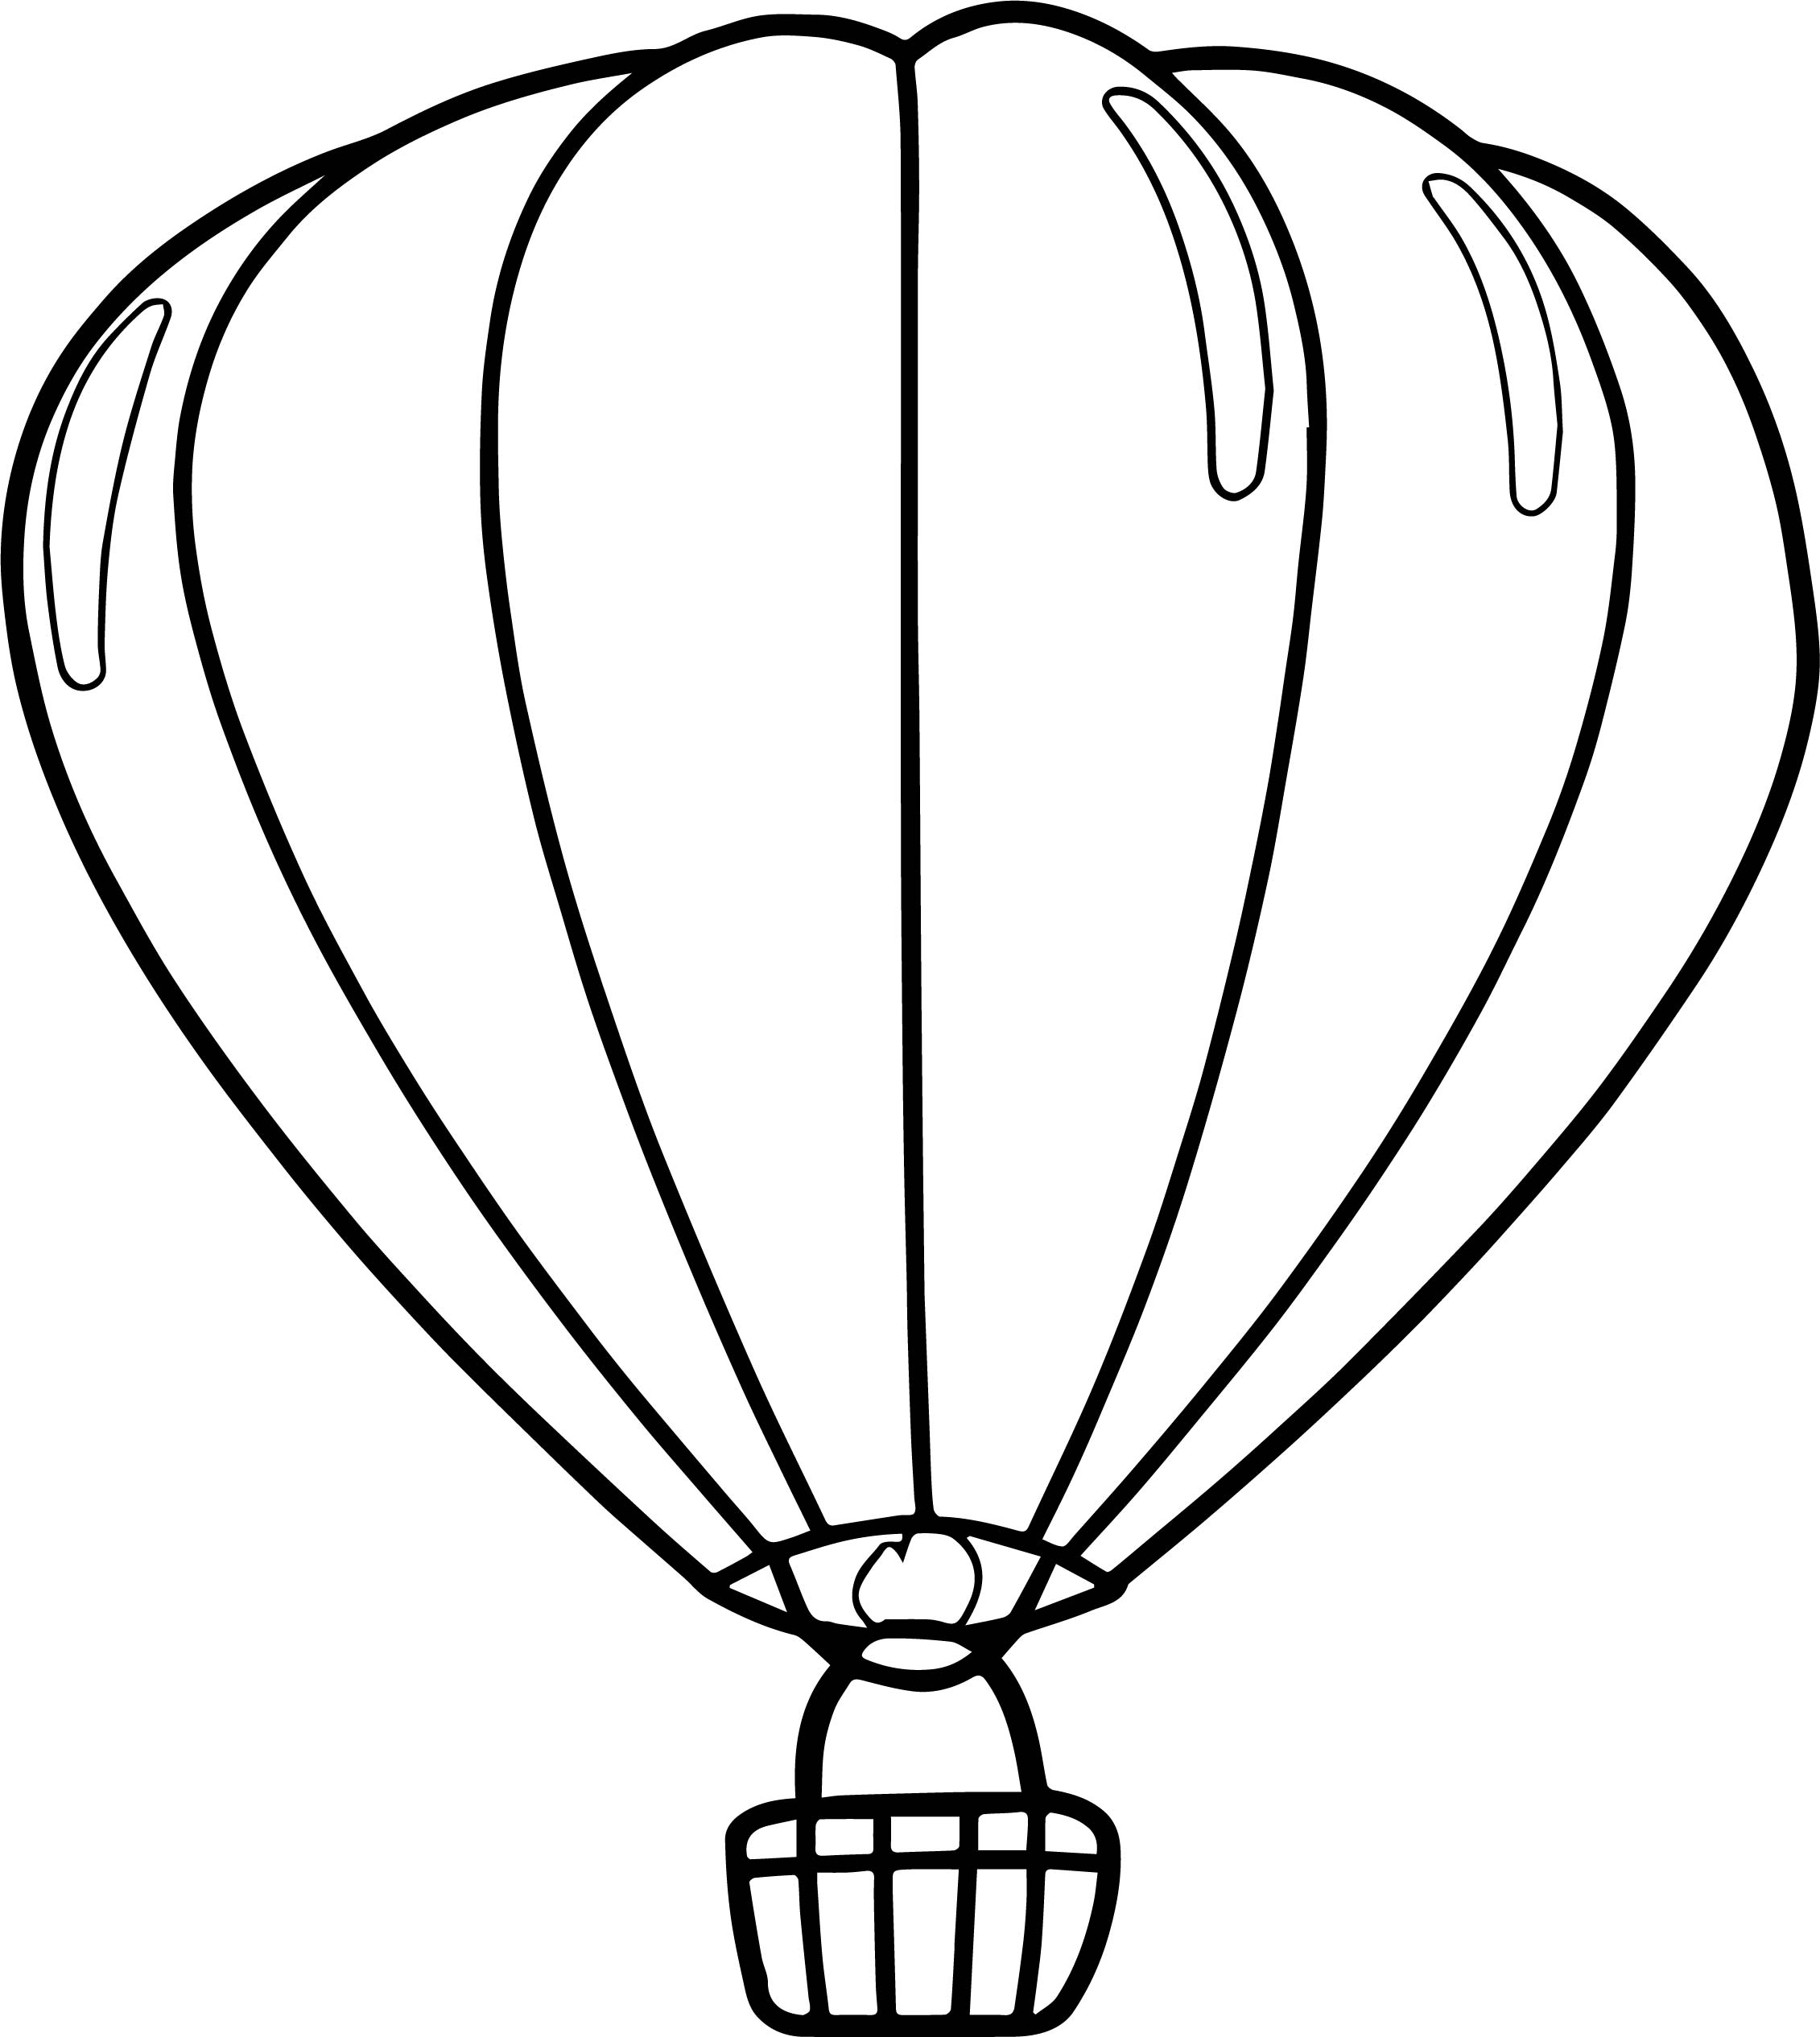 Free Hot Air Balloon Coloring Pages at GetDrawings | Free ...